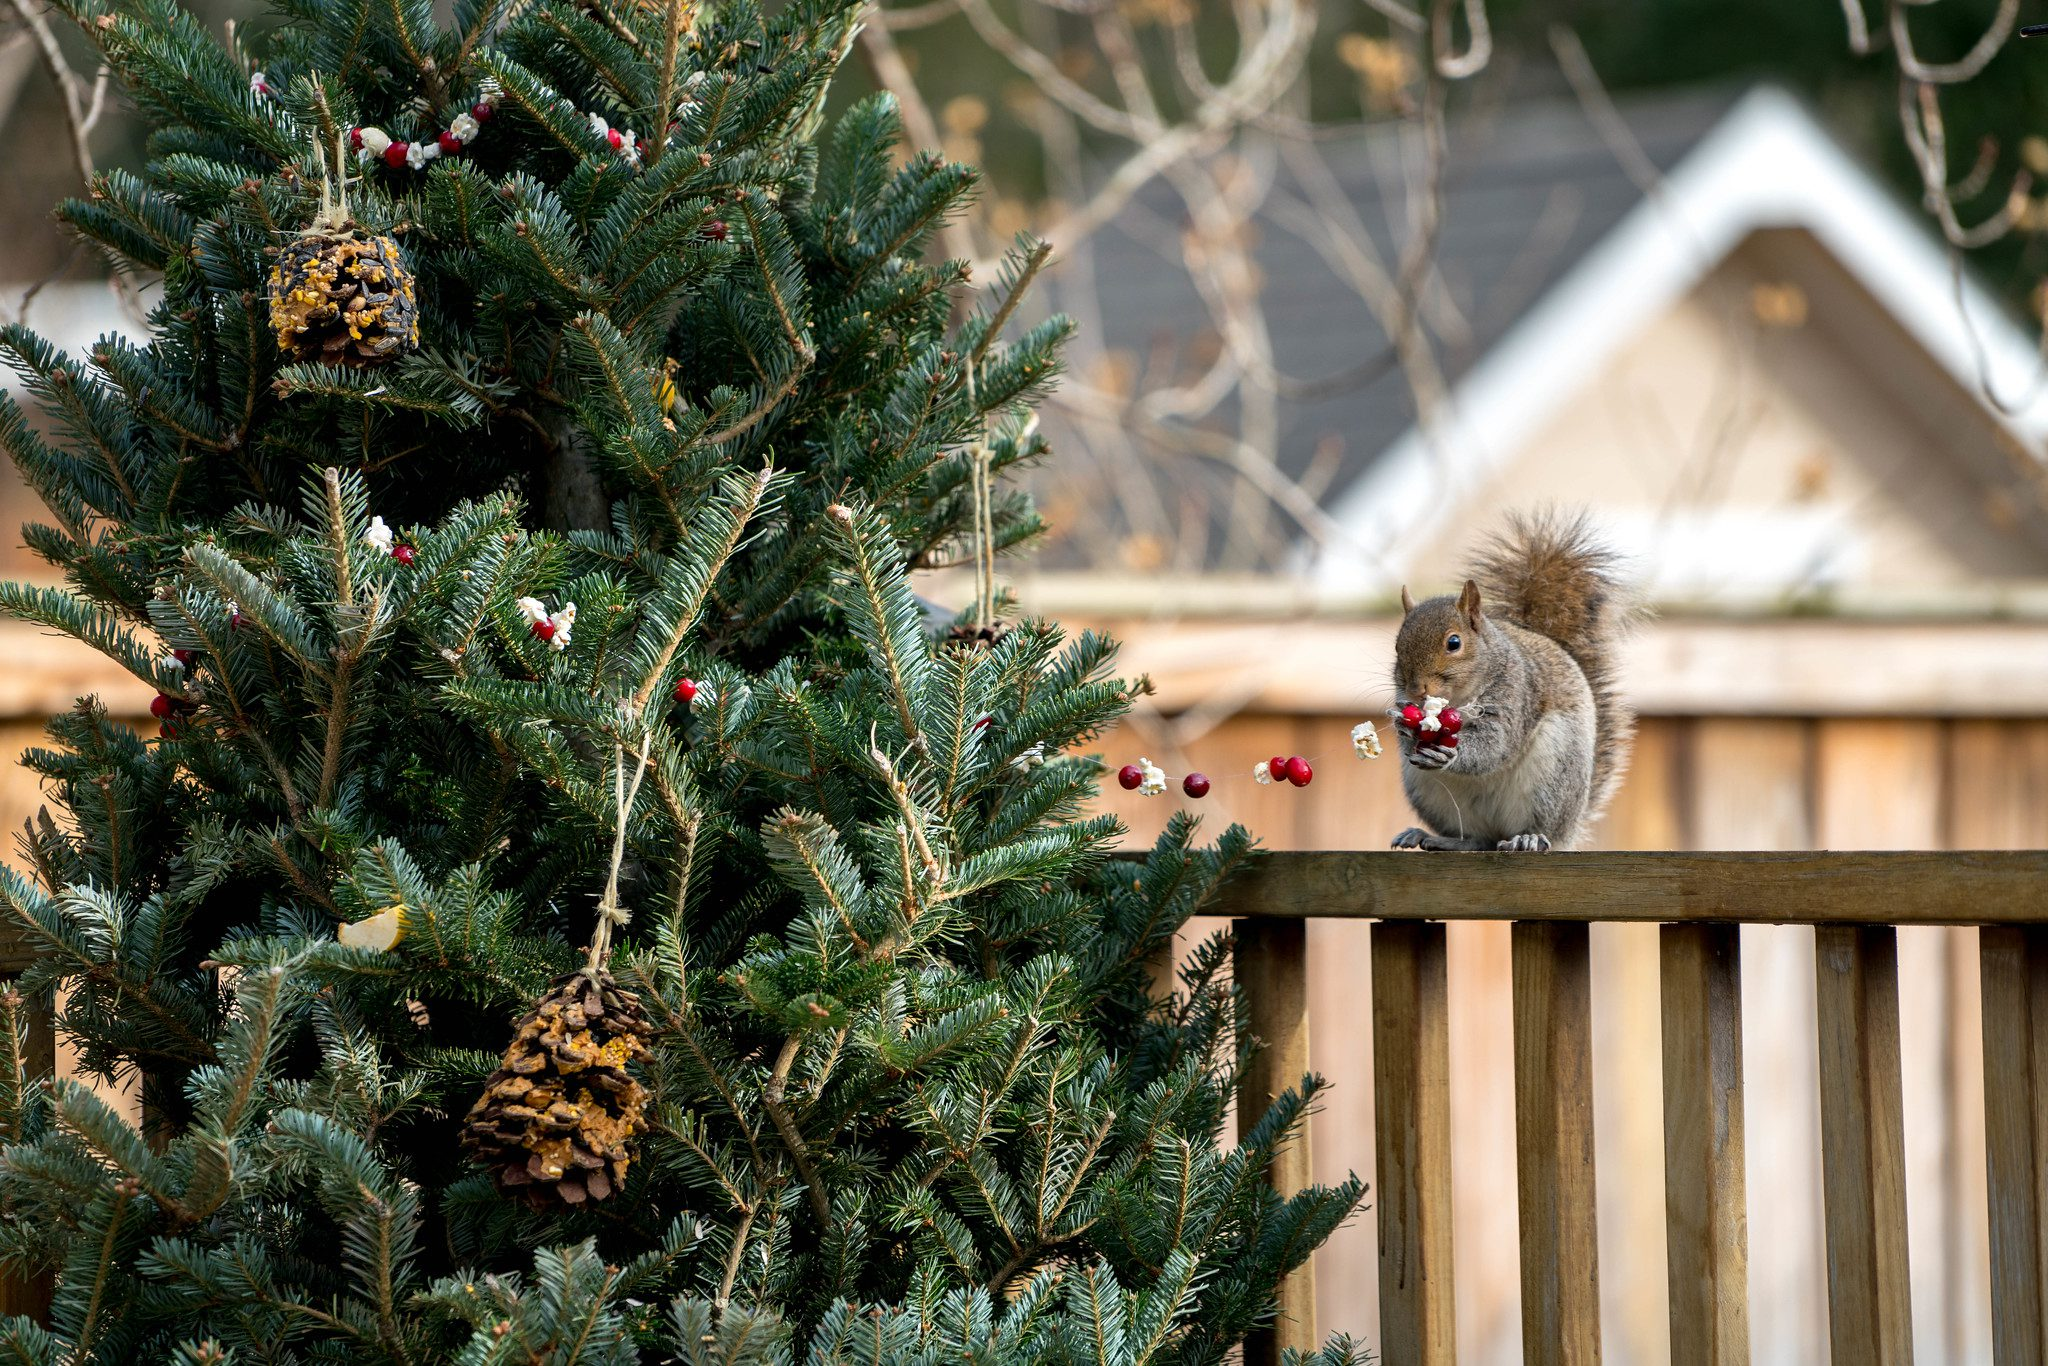 Christmas tree with a squirrel